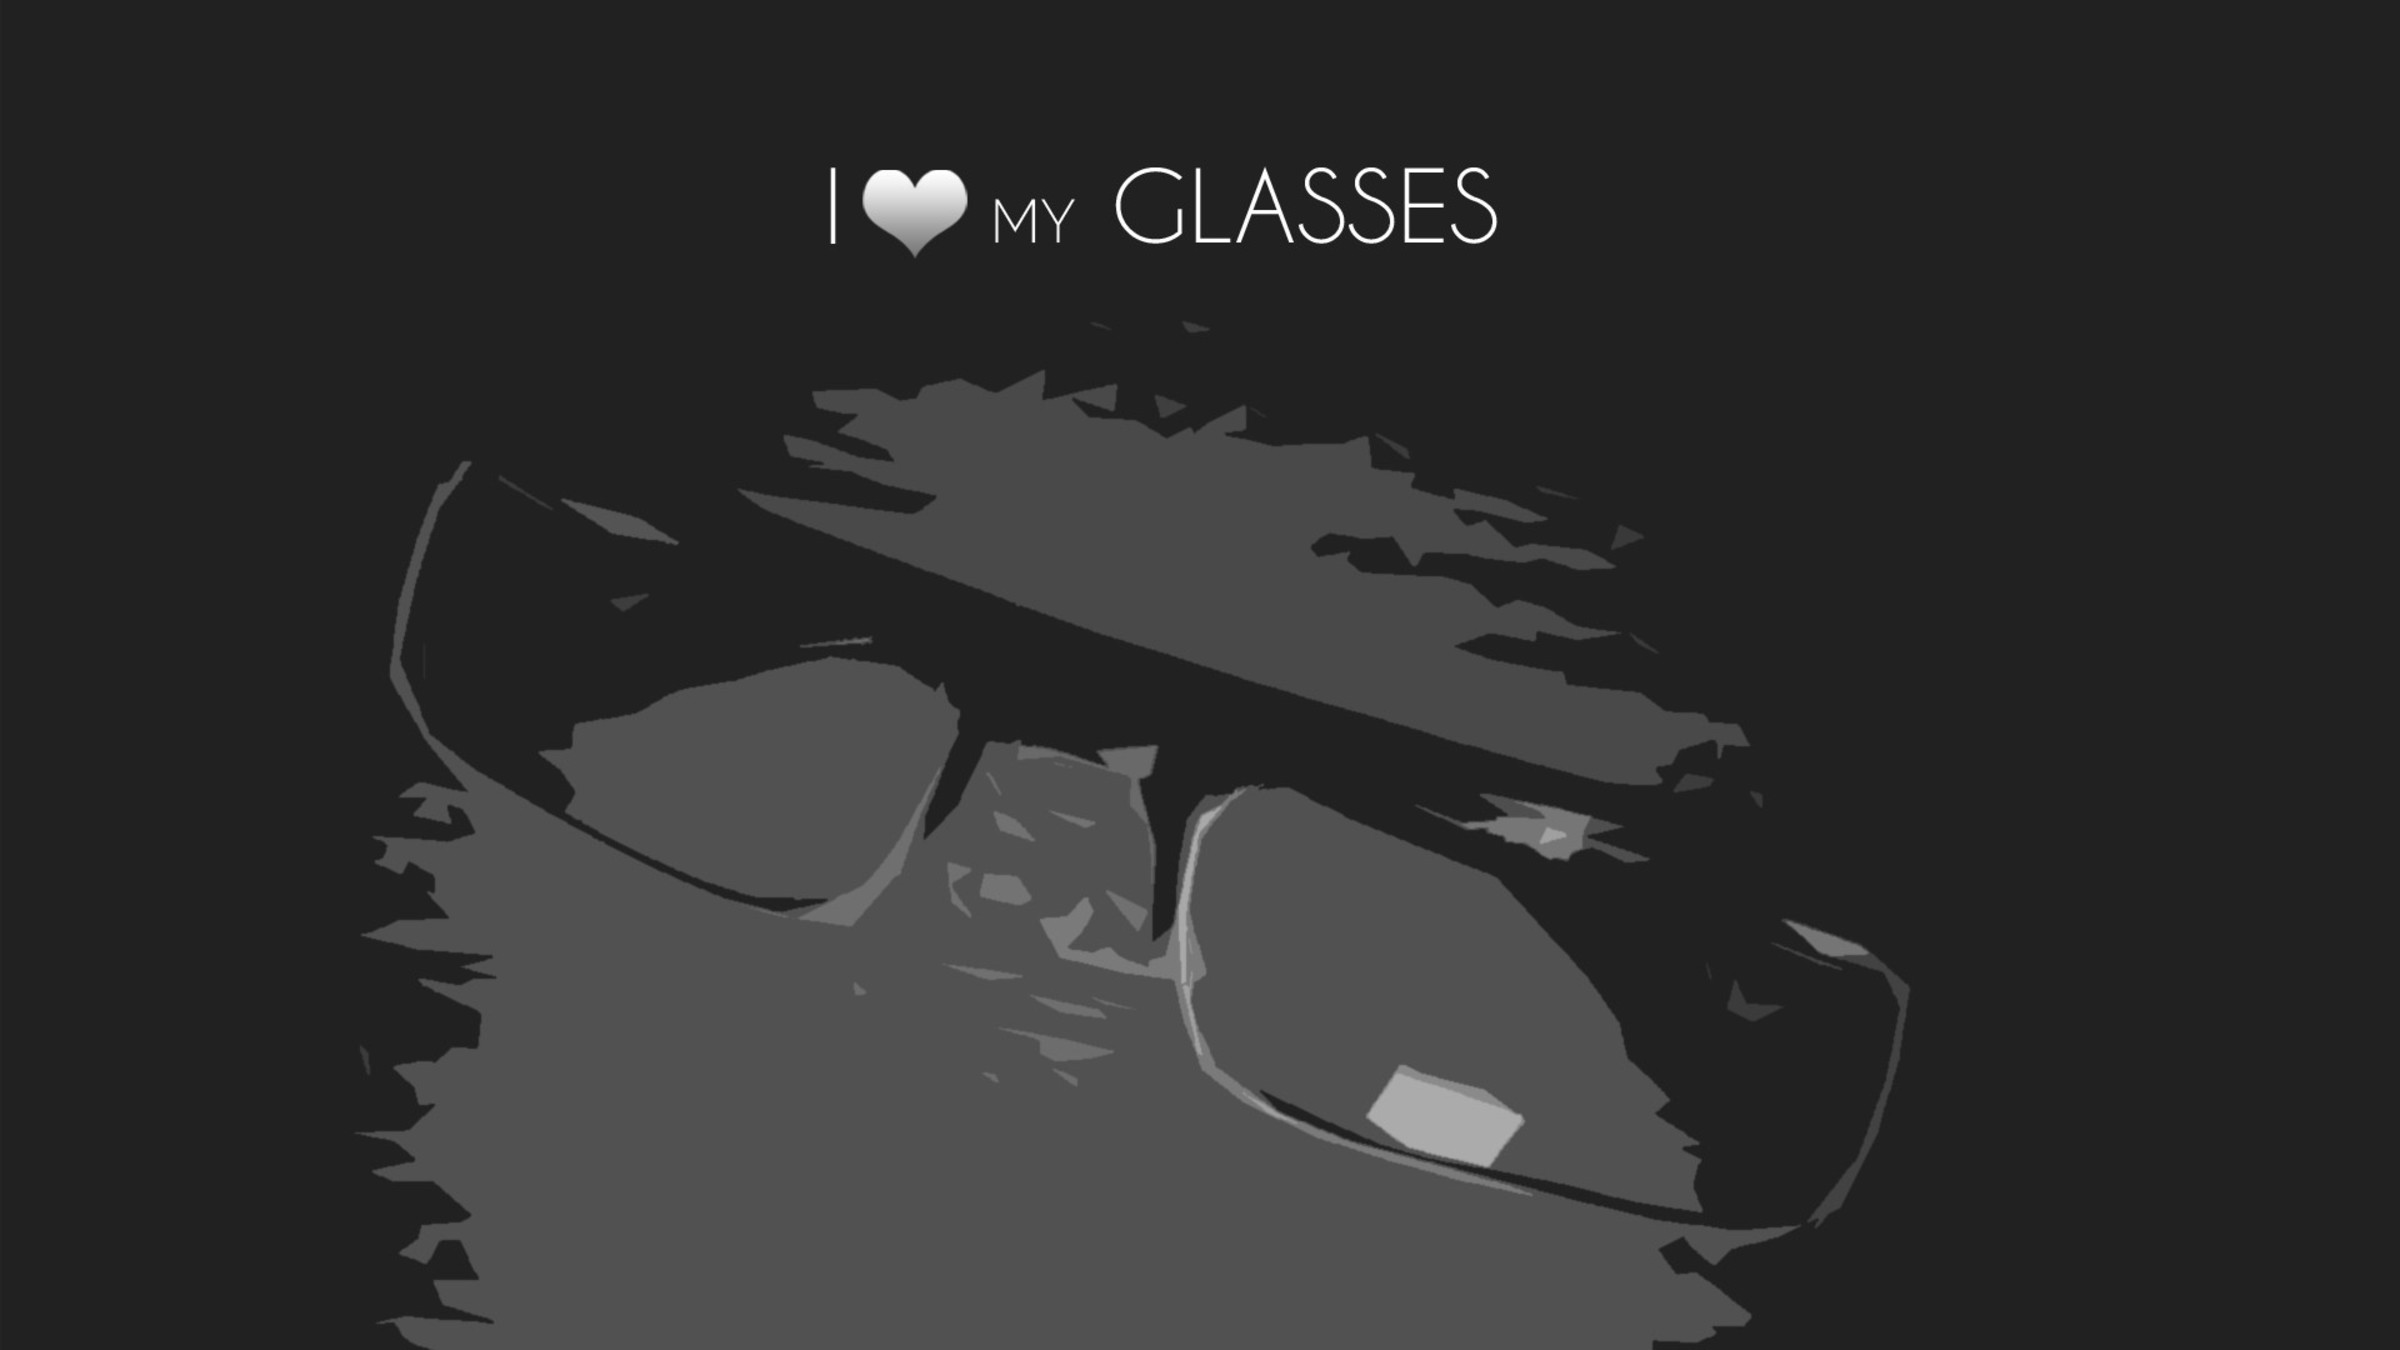 Hasan khatib backgrounds design geek glasses wallpaper ...